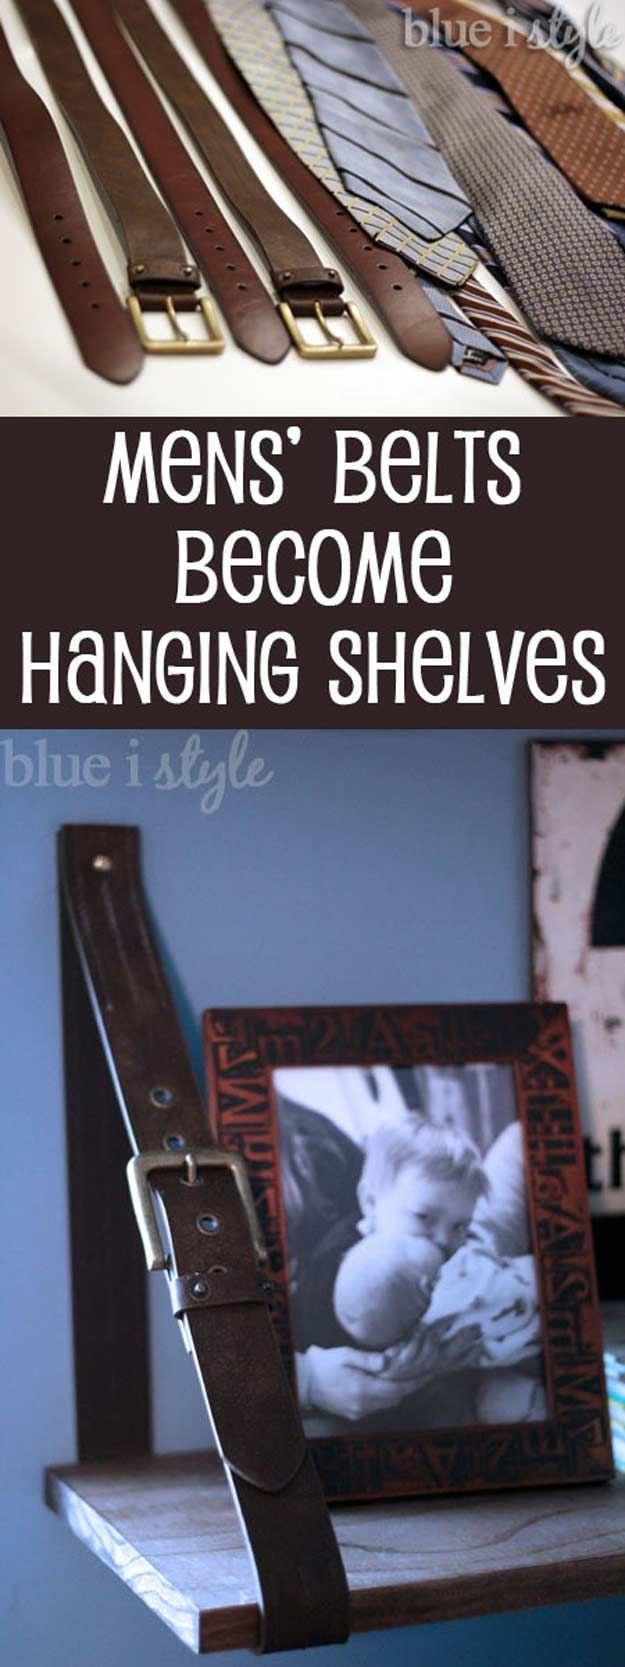 Old Belts | 43 Things to Never Throw Away | Cool DIY Ideas On How To Upcycle and Repurpose Old Materials by DIY Ready at http://diyready.com/43-things-to-never-throw-away/